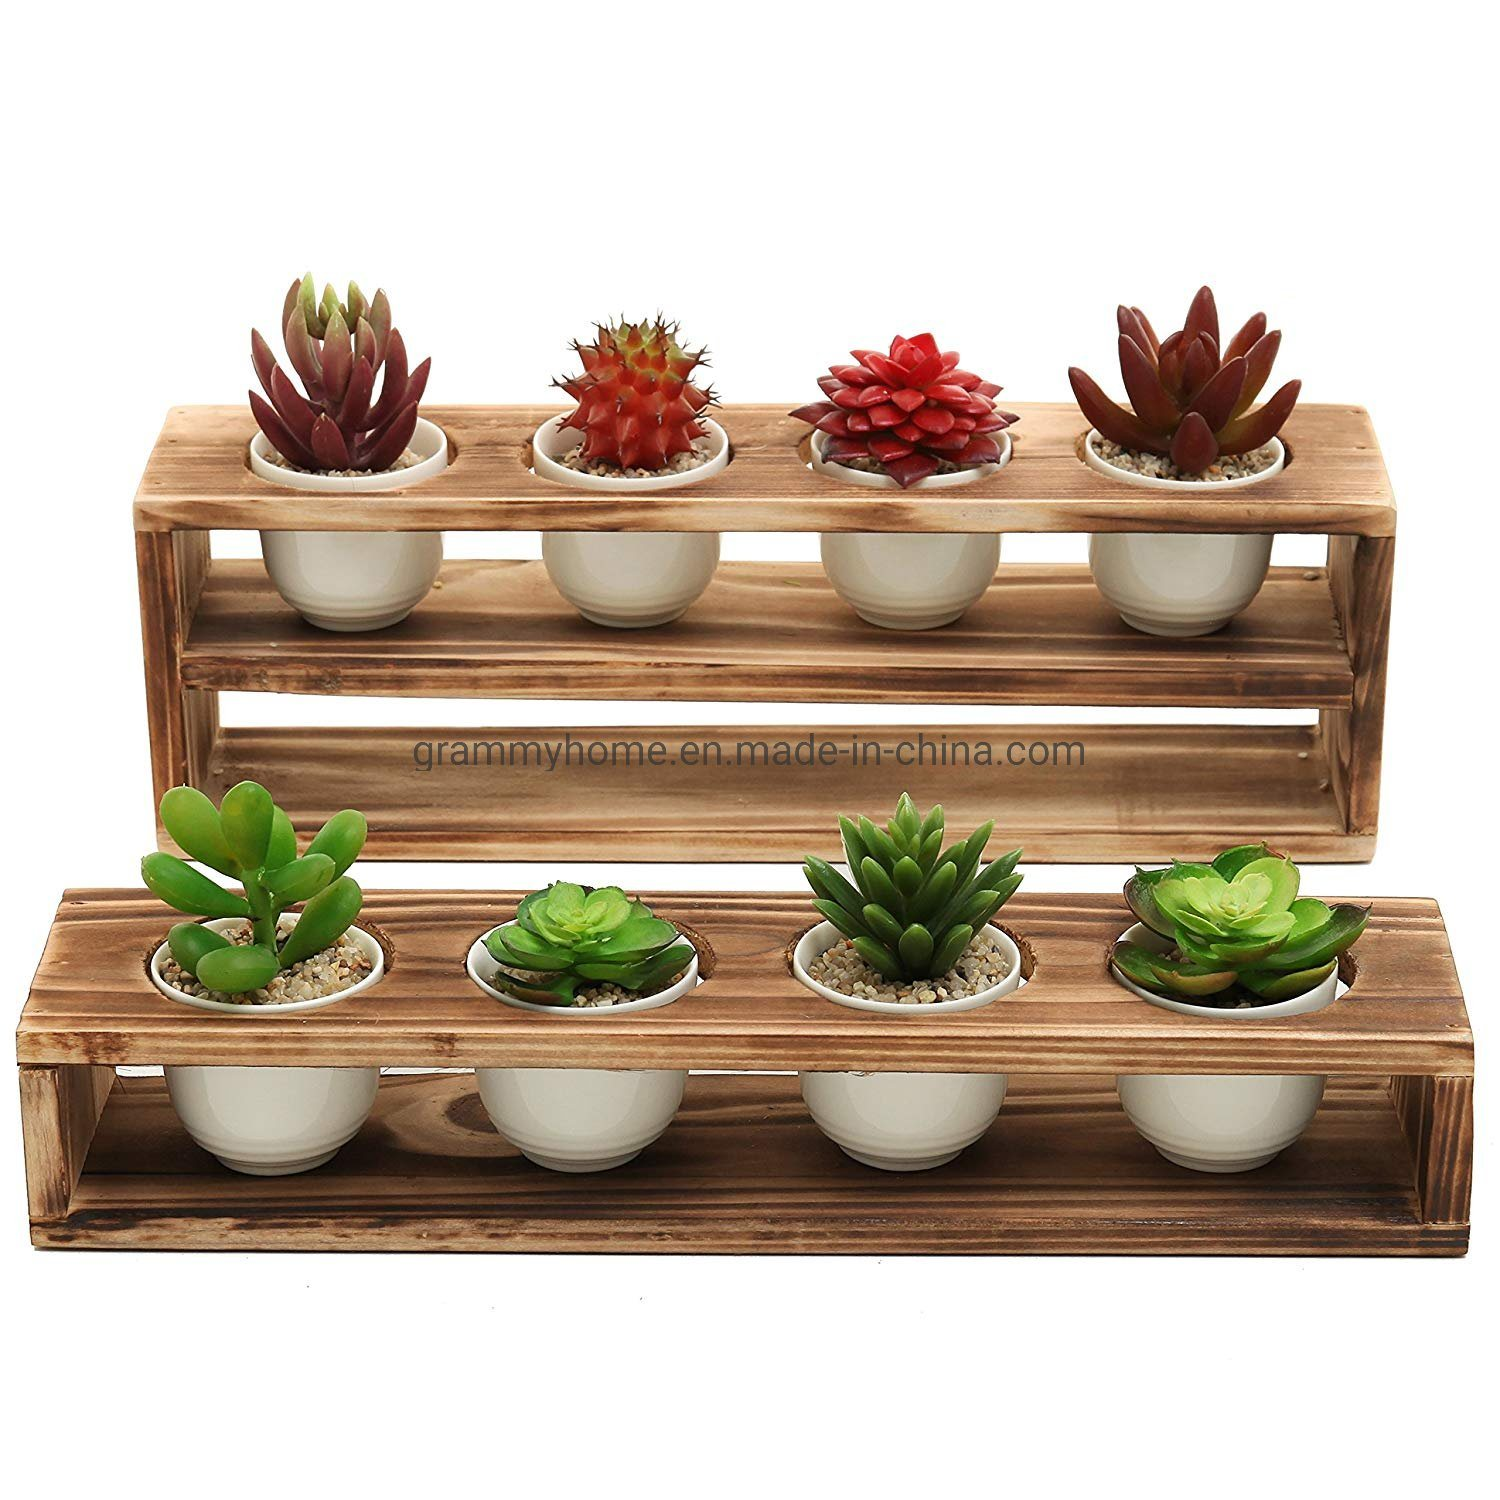 China Torched Wood Tiered Succulent Planter Stand With Mini White Ceramic Plant Pots China Wooden Crate And Wood Planter Price